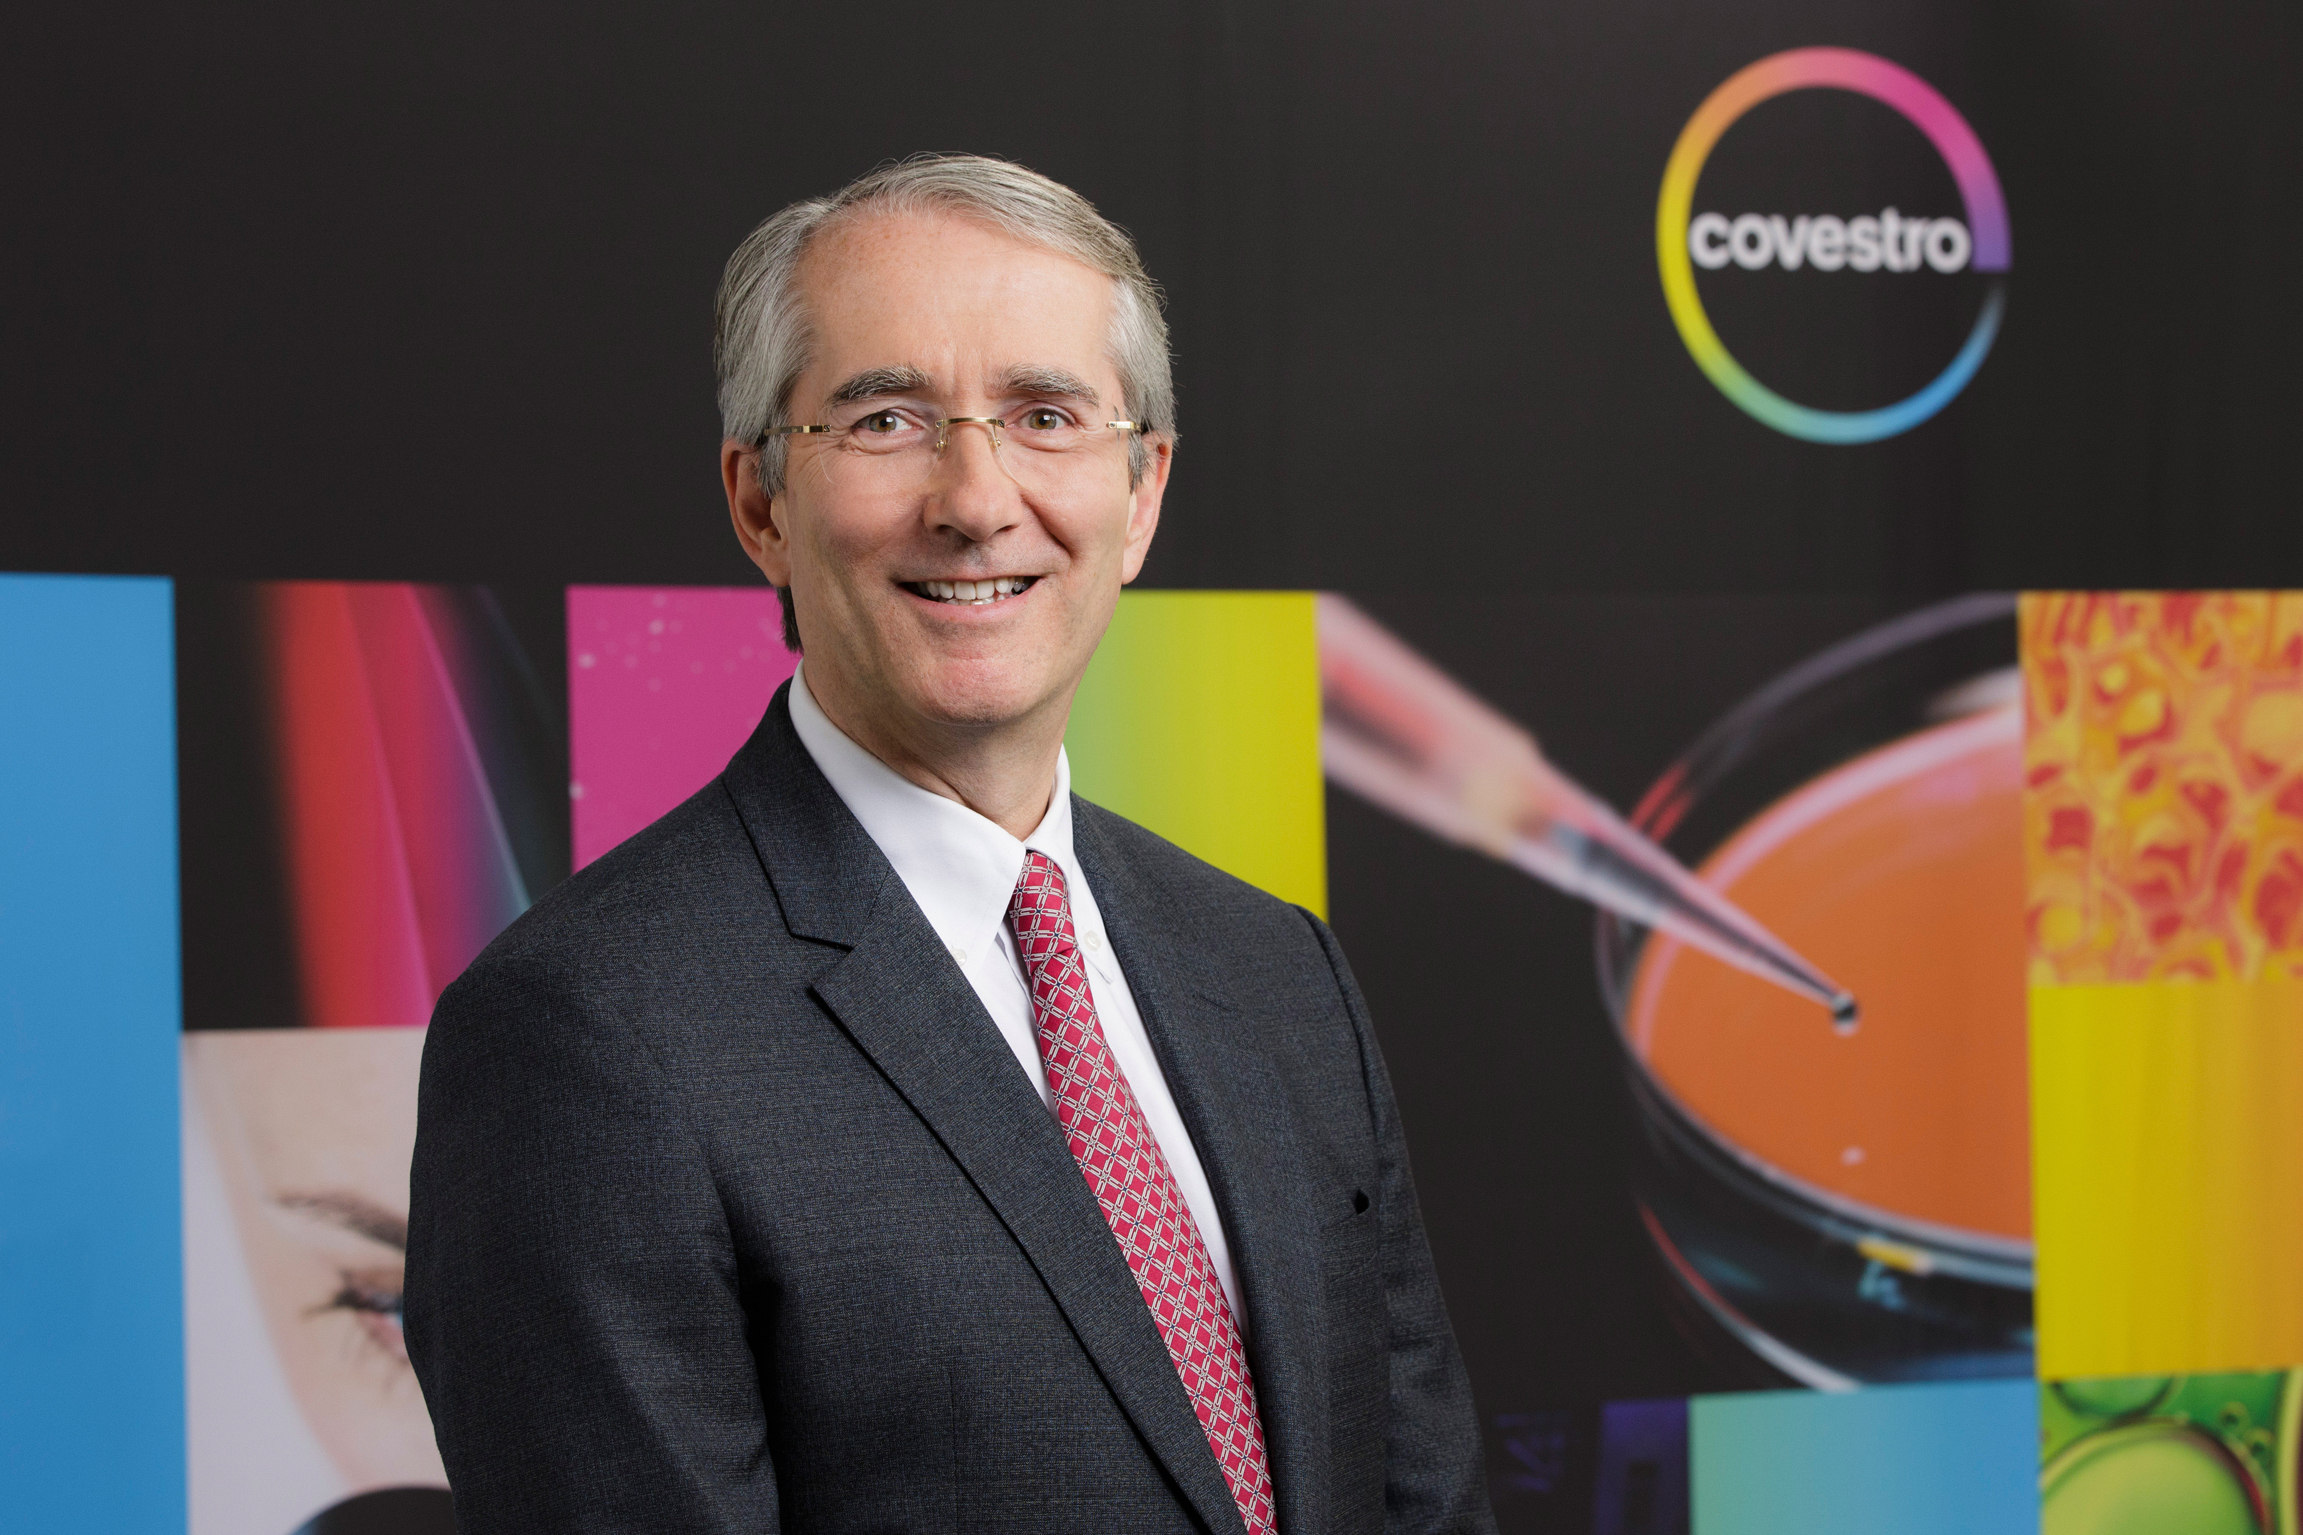 Patrick Thomas CEO of Bayer MaterialScience Covestro